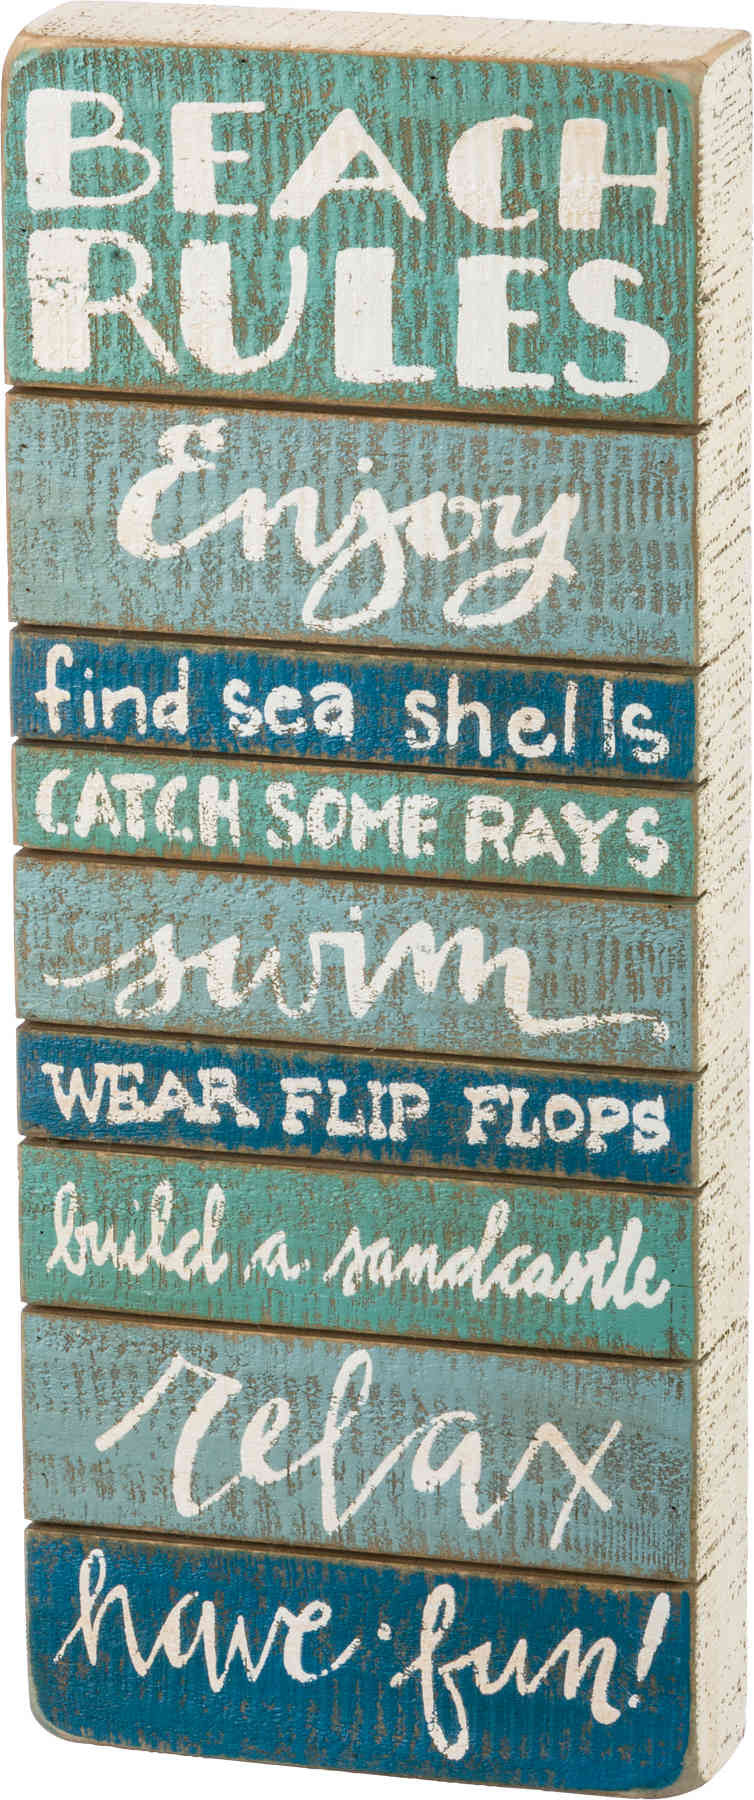 beach rules painted wooden sign